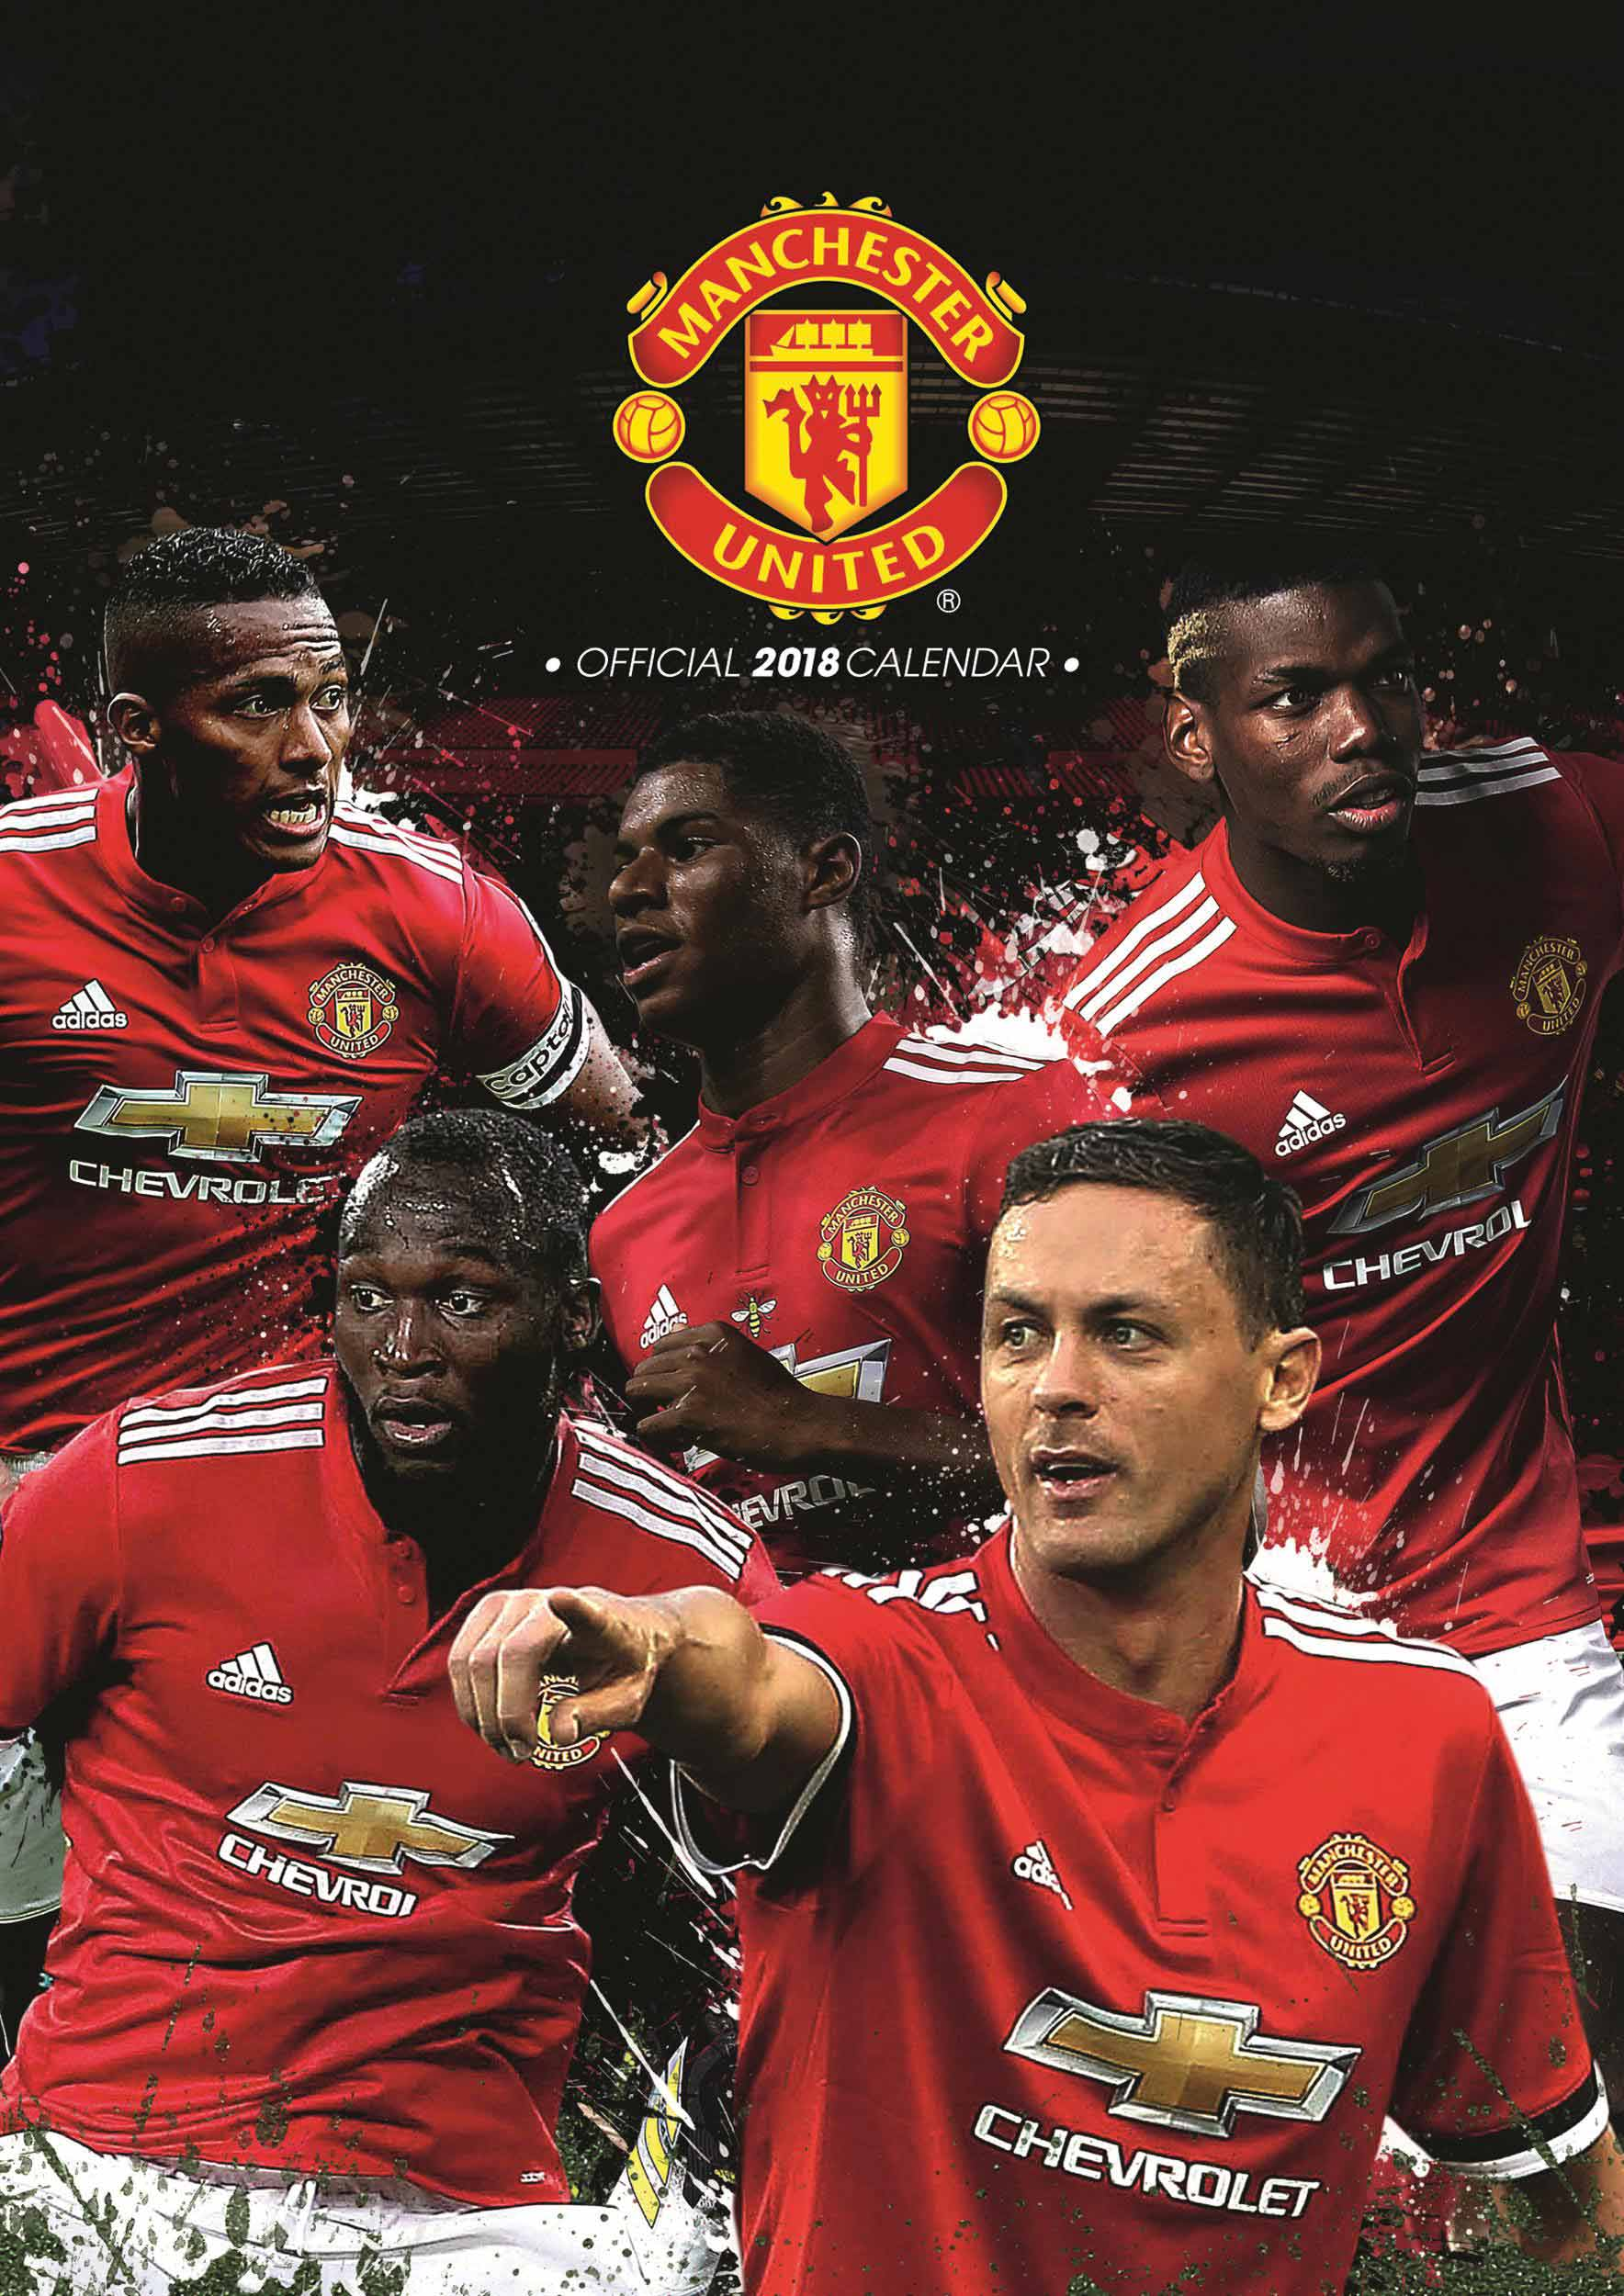 manchester united team wallpapers on wallpaperdog manchester united team wallpapers on